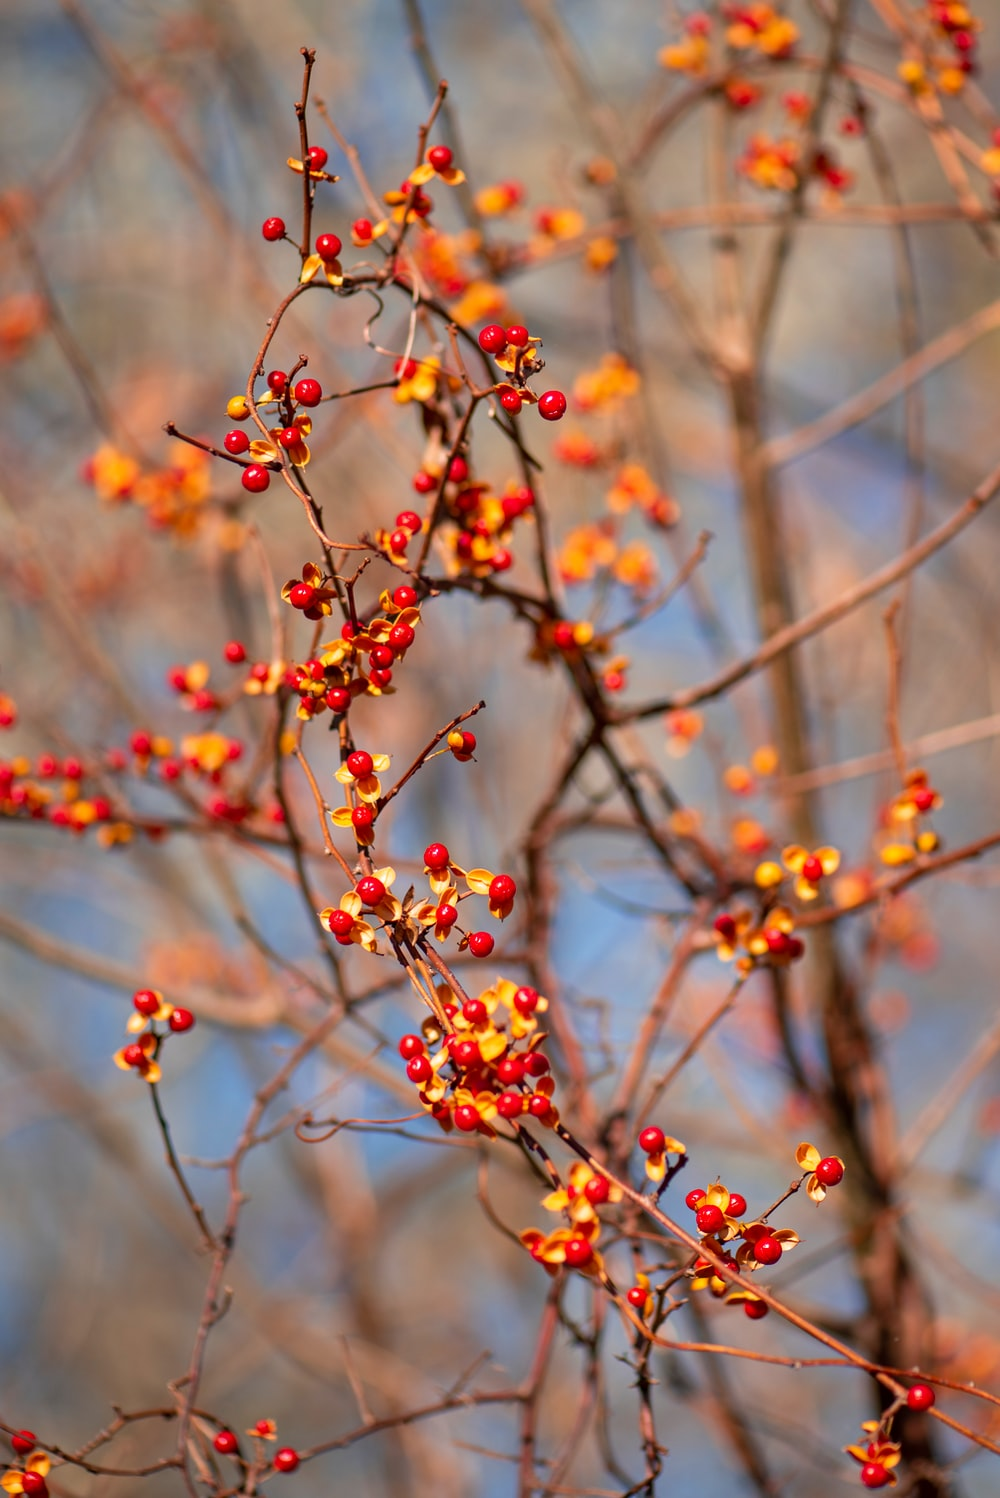 selective focus photo of orange and red berries